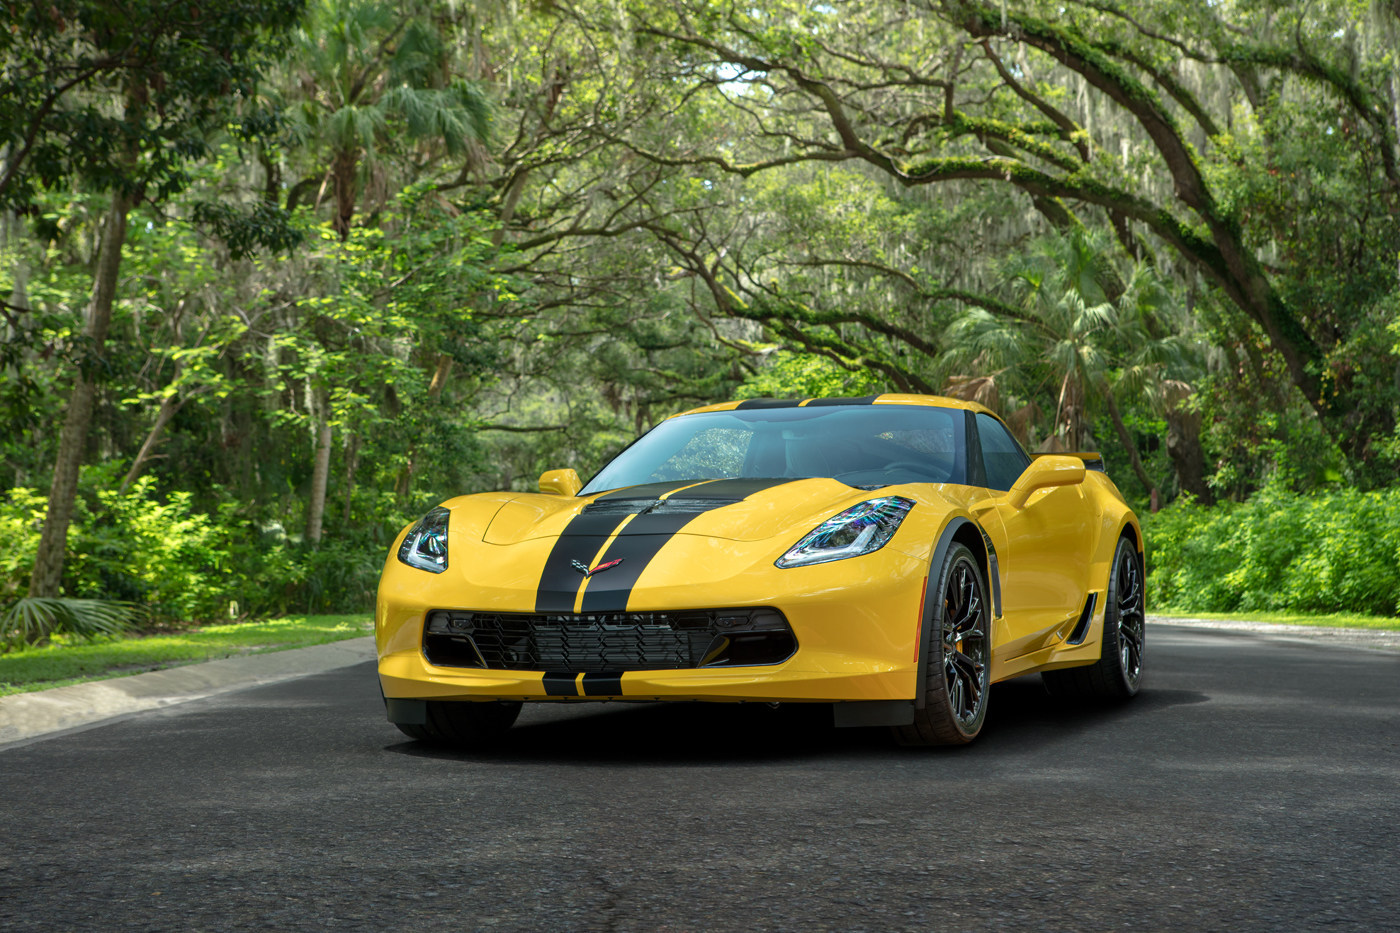 hertz celebrates its 100th anniversary with a special edition chevrolet corvette z06 the news. Black Bedroom Furniture Sets. Home Design Ideas